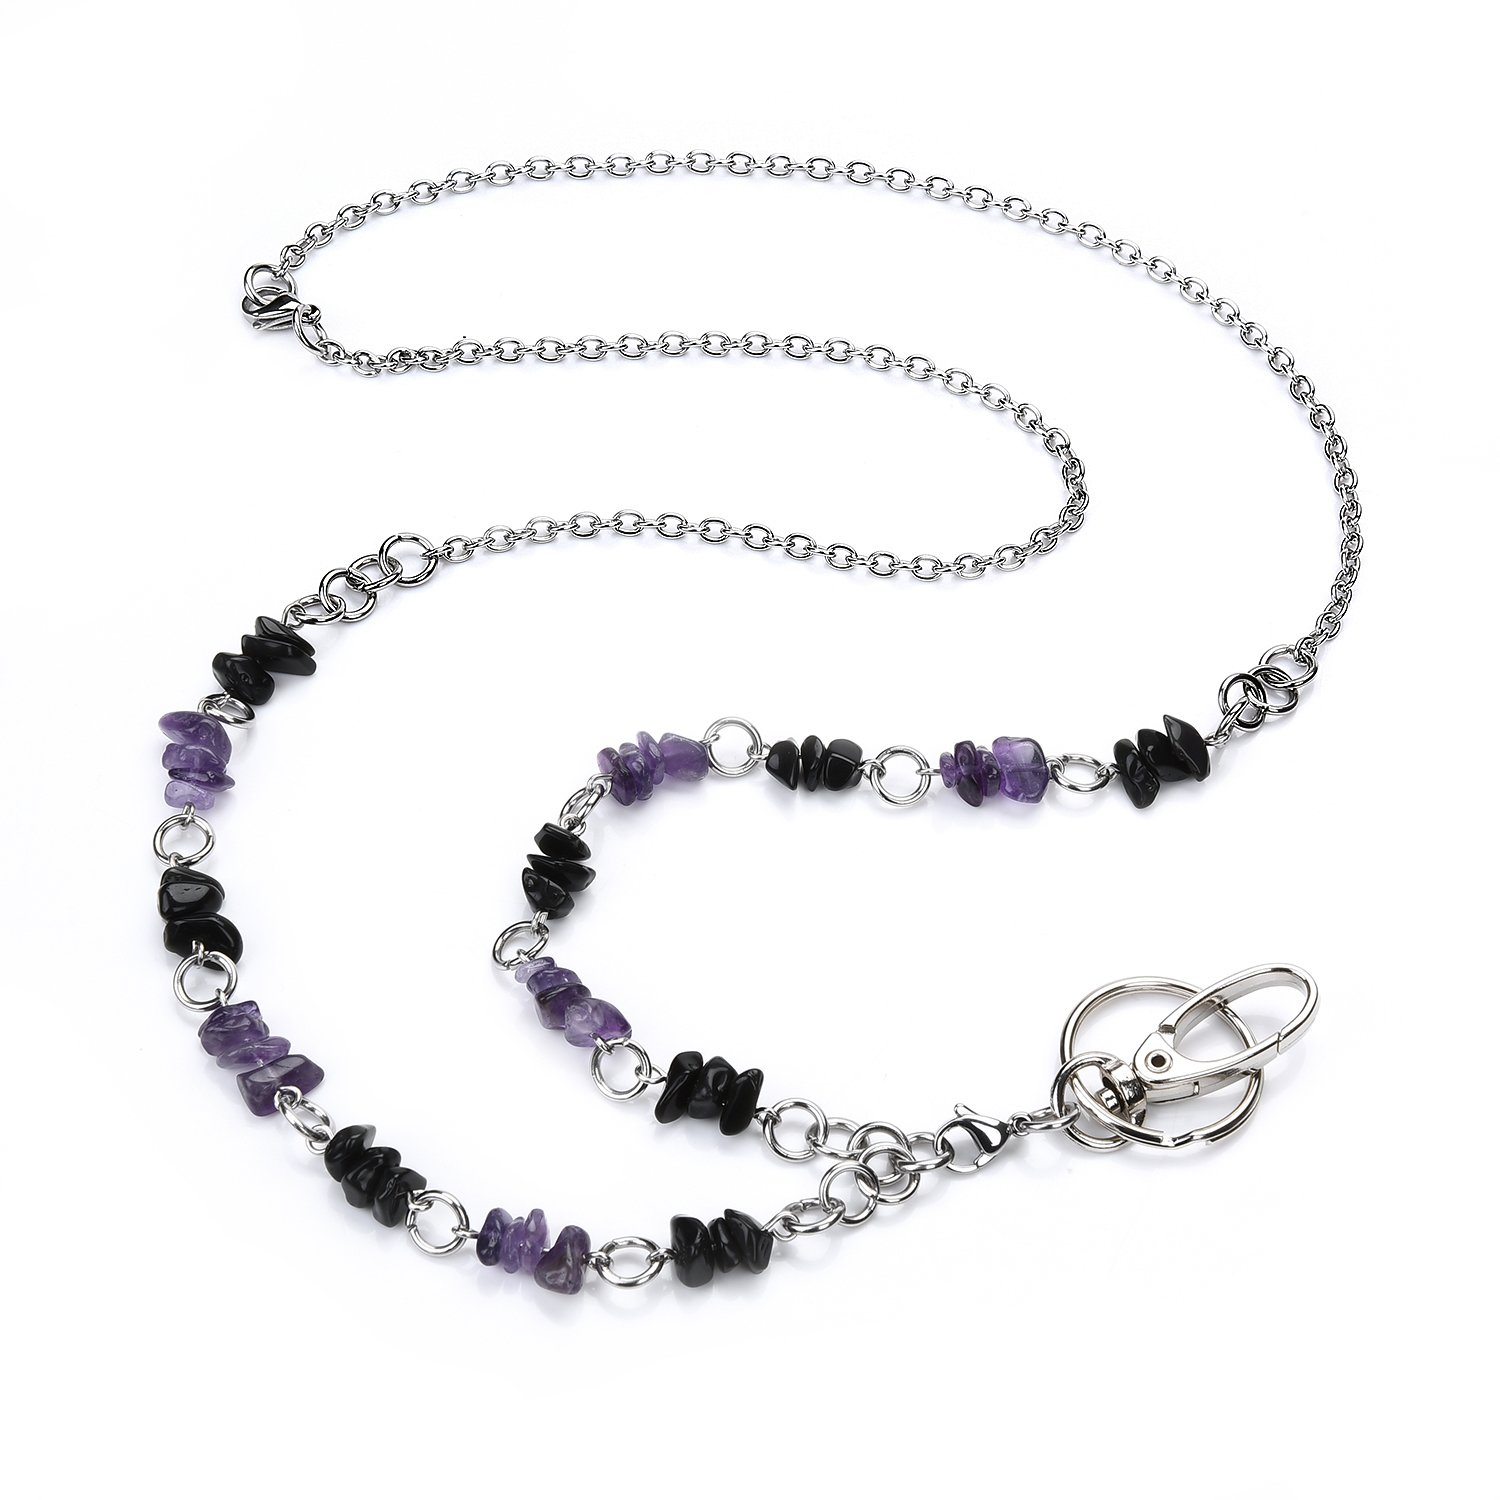 LUXIANDA Purple Natural Crystal Beads Lanyard for Nurse, Teacher and OL,Unique Design Office Lanyard with Stainless Steel Chain for ID Keys, Badge Holder